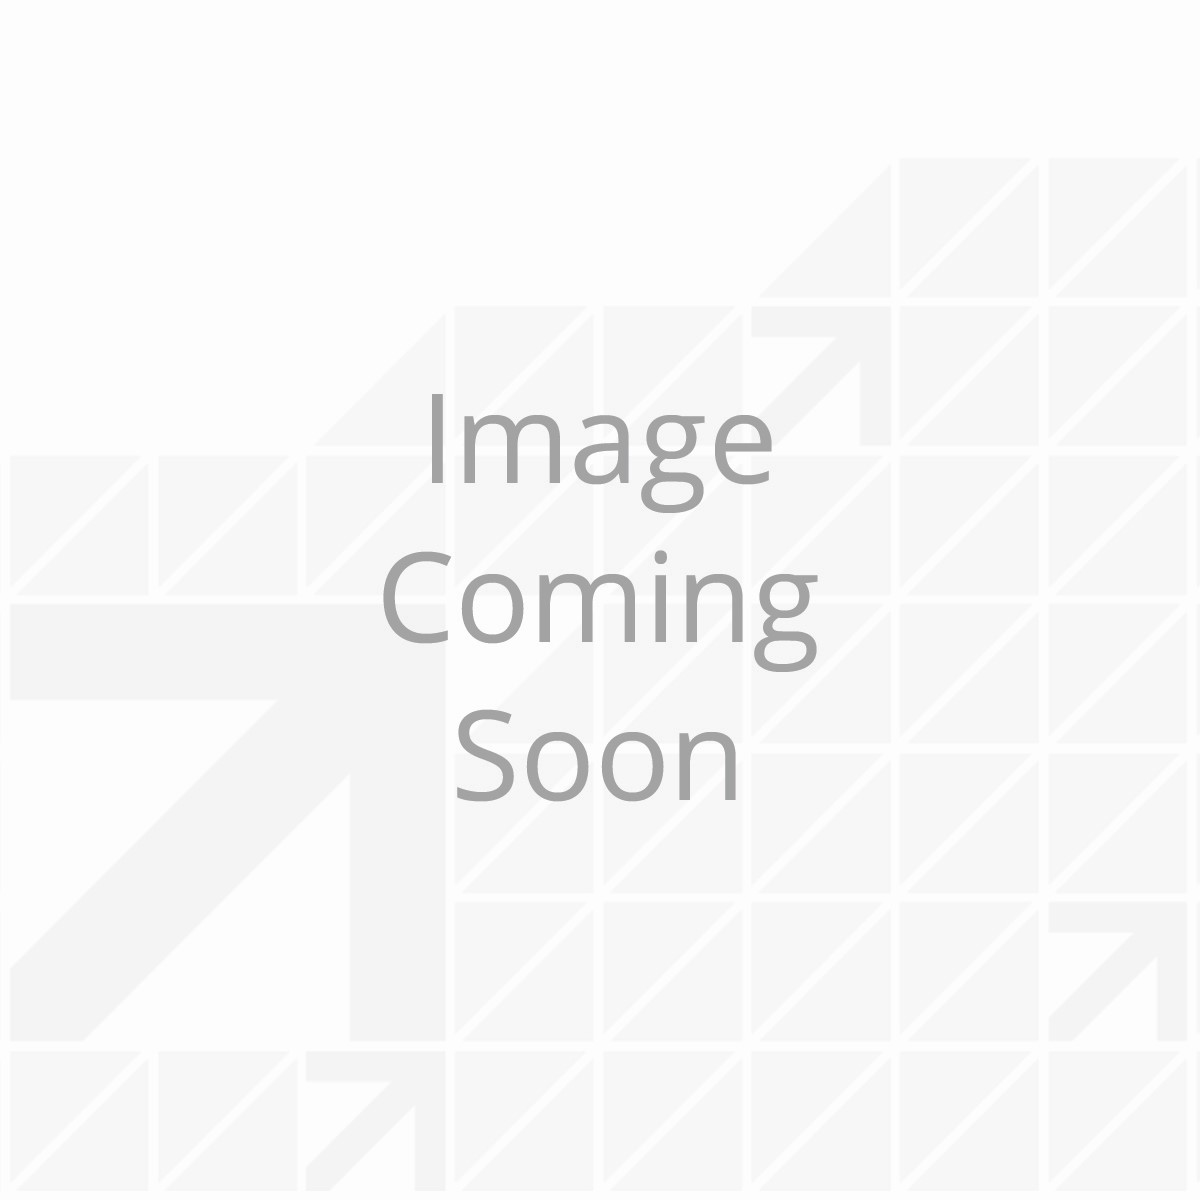 Actuator End Cap